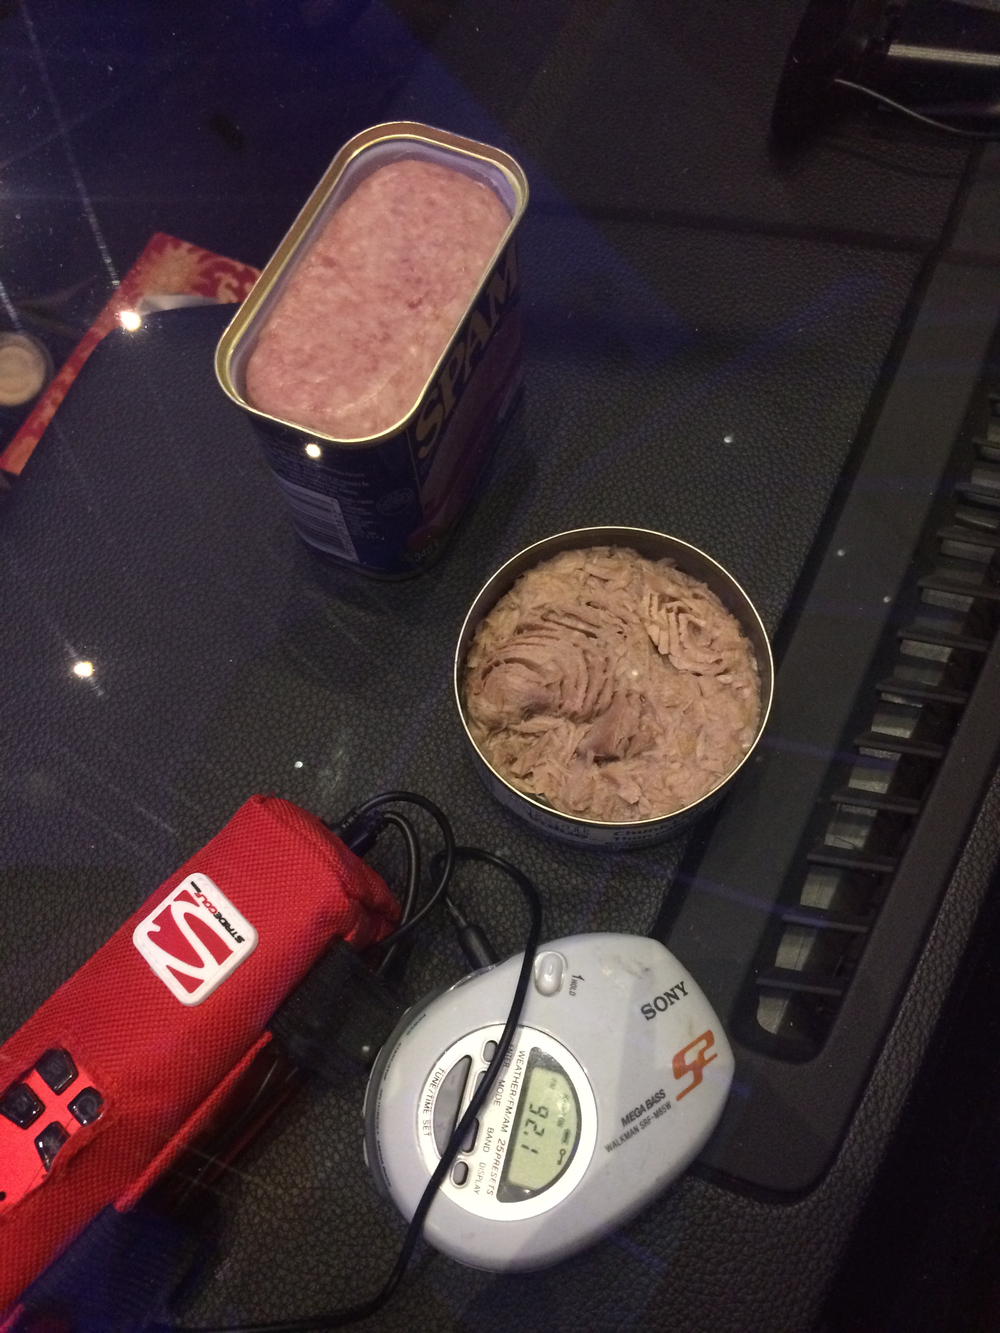 The opened can o' Spam, tuna, and the radio.